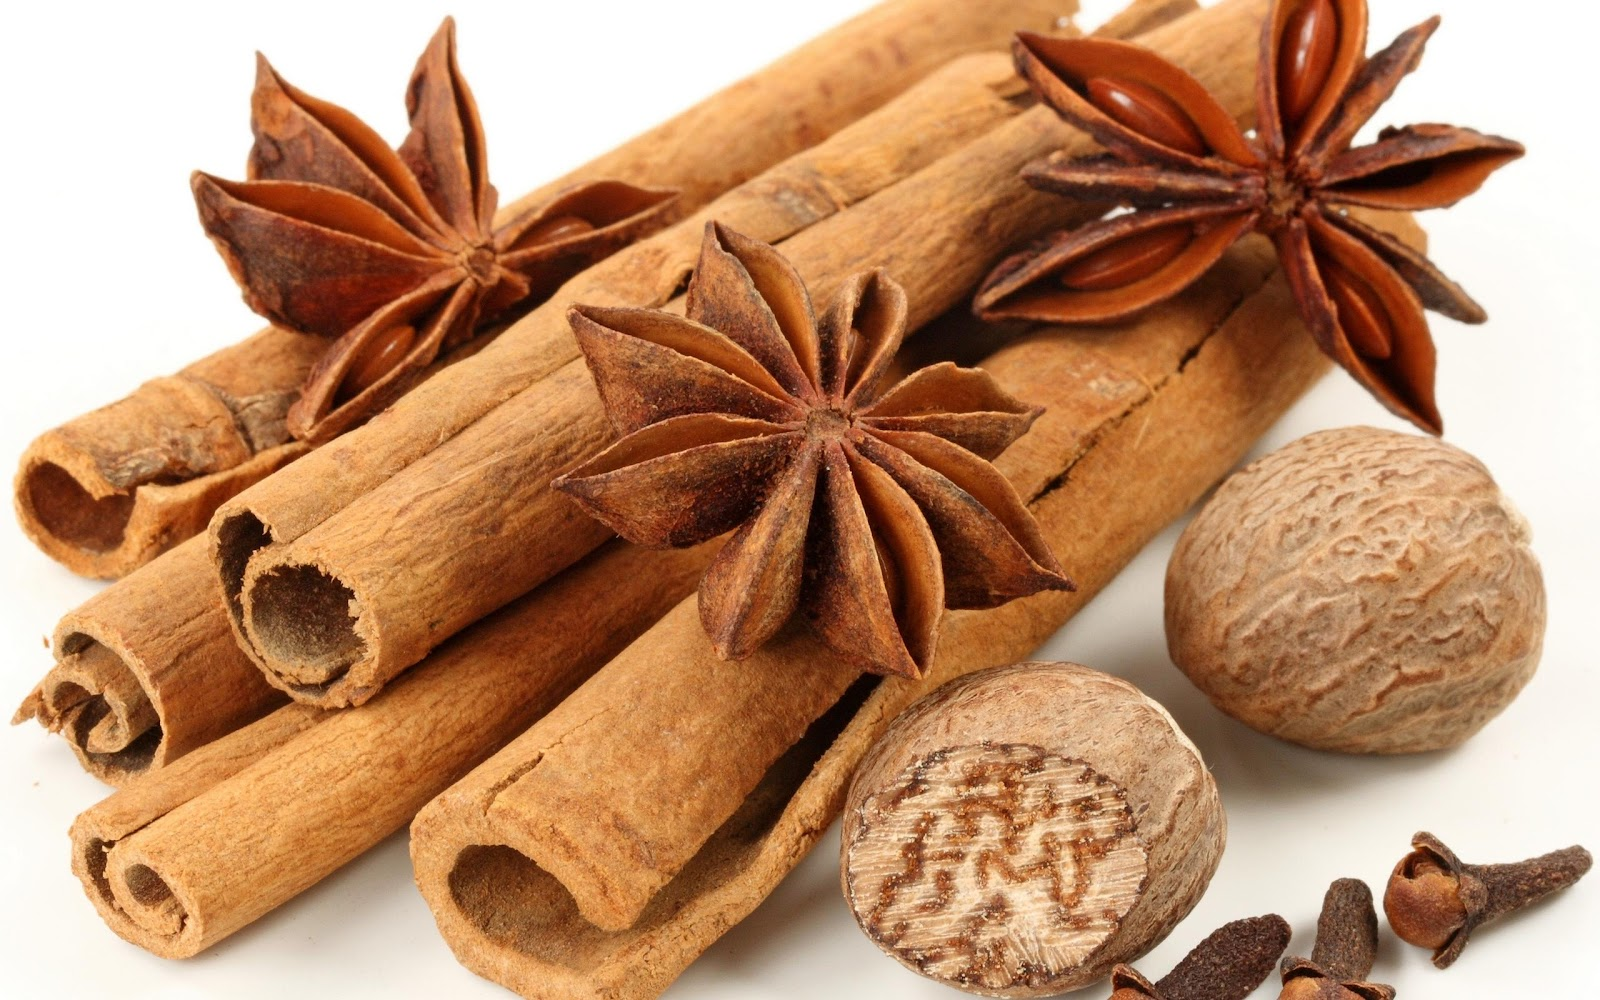 Cinnamon to boost your fitness